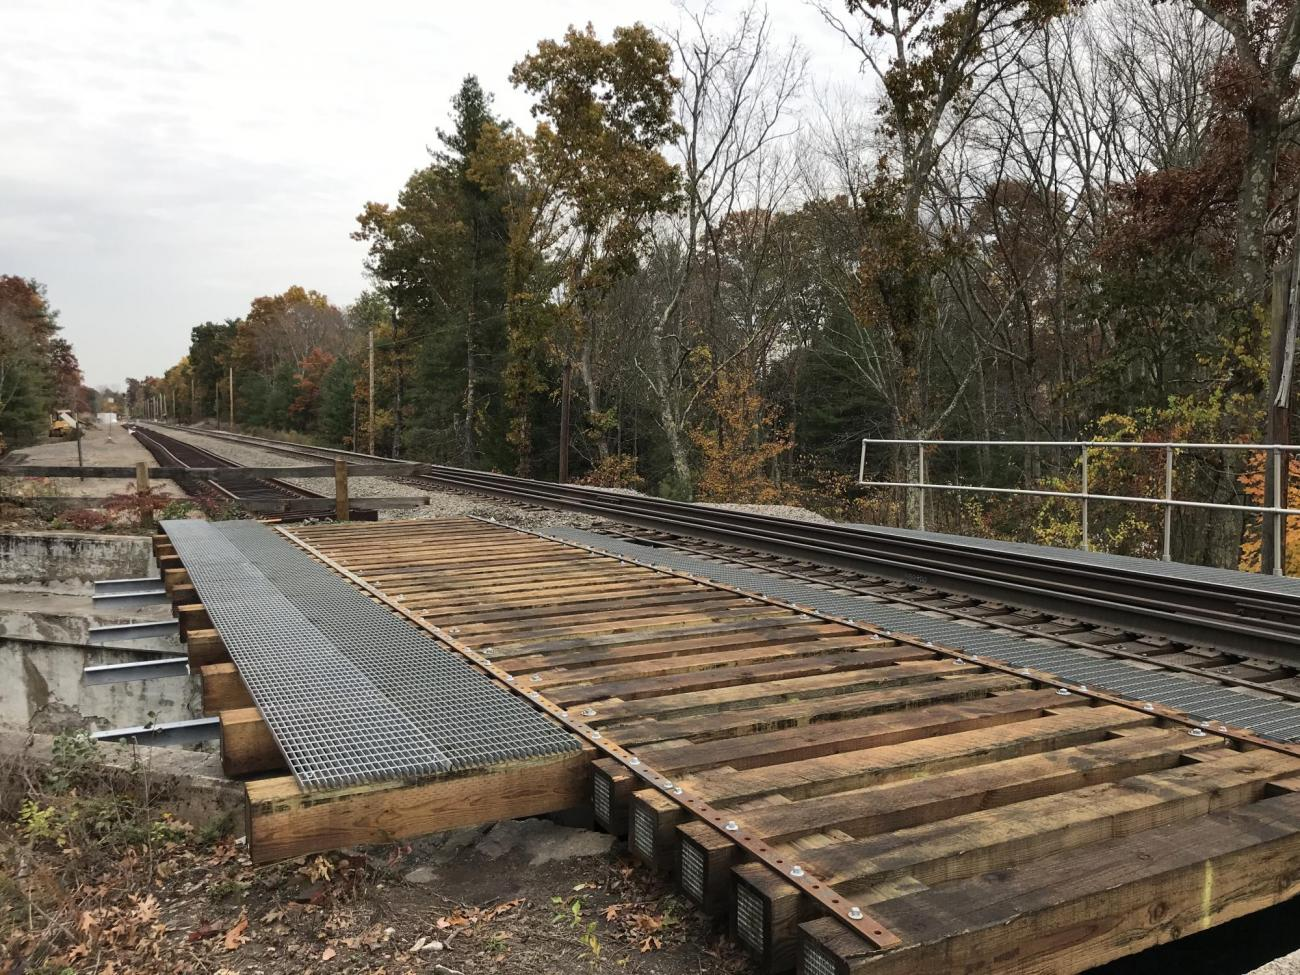 A new steel support structure and timber bridge ties were installed at the West Street bridge in October 2019